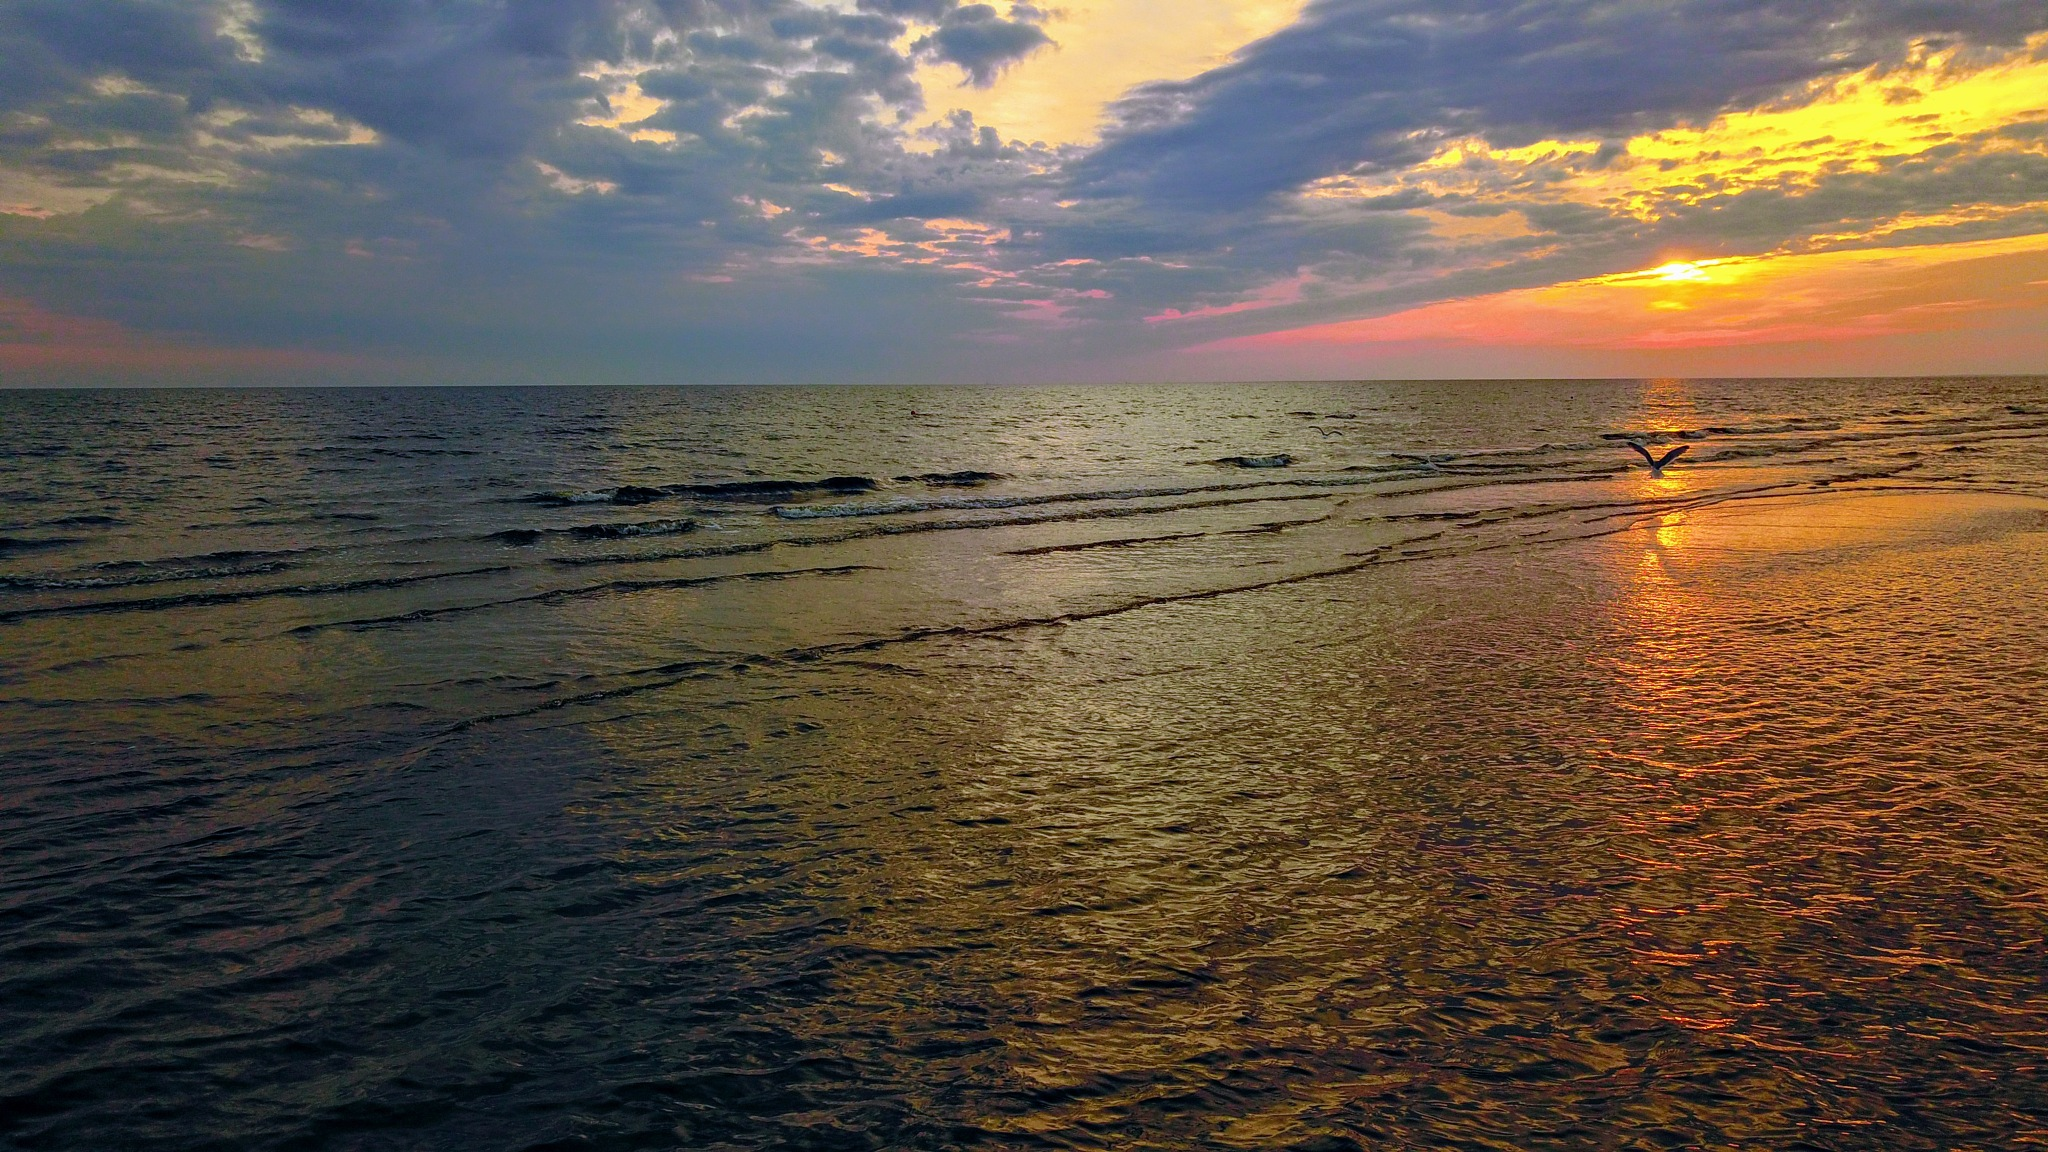 Morning over the Gulf of Riga III by Art Wind